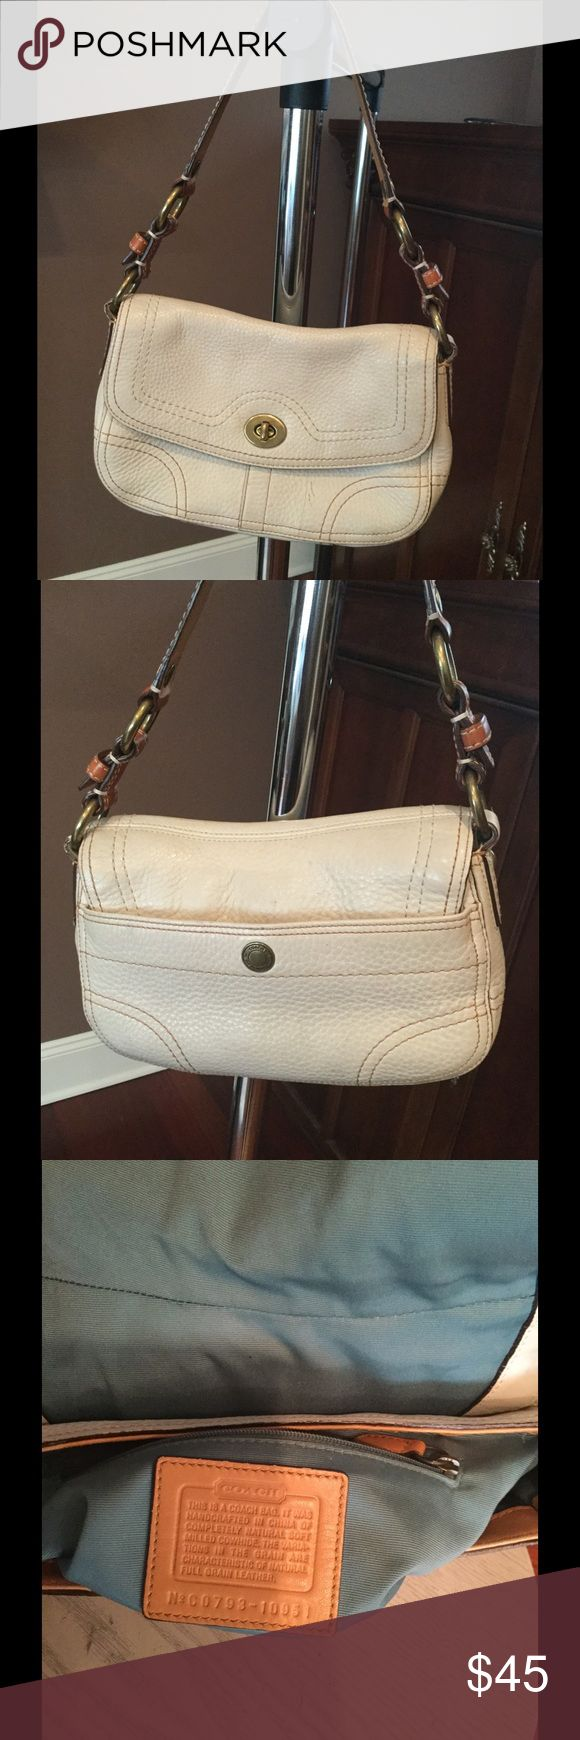 Coach Chelsea Pebbled Leather Handbag Purse COACH Chelsea Ivory pebbled leather. Very good condition, as shown with only minor markings. Coach Bags Shoulder Bags